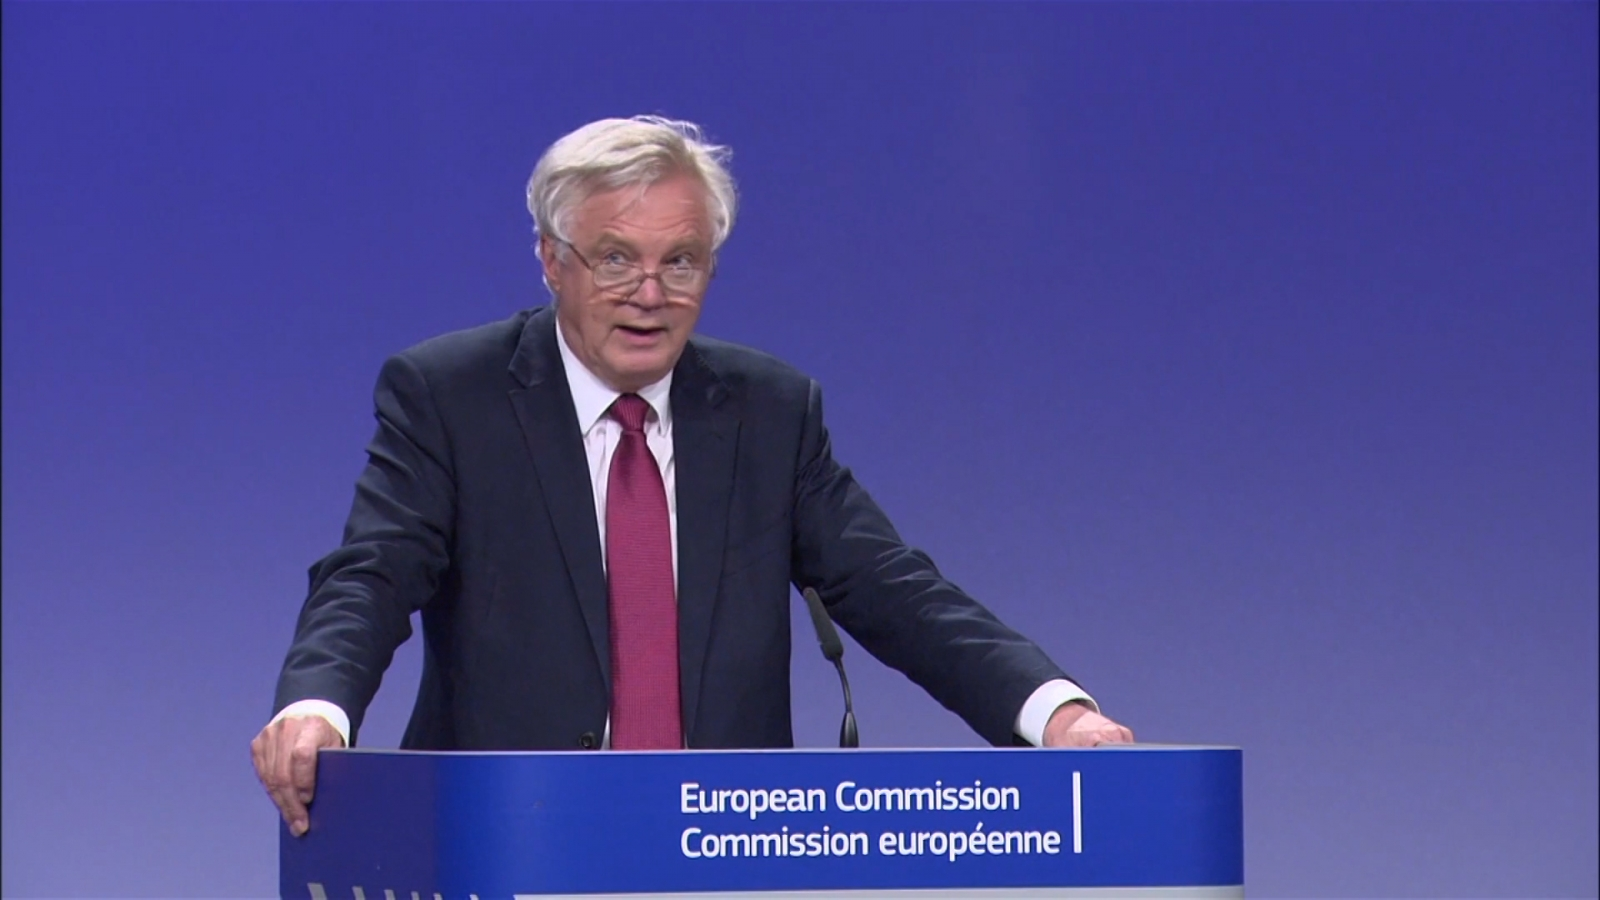 EU negotiations kick off, both parties want 'quick and substantive progress'